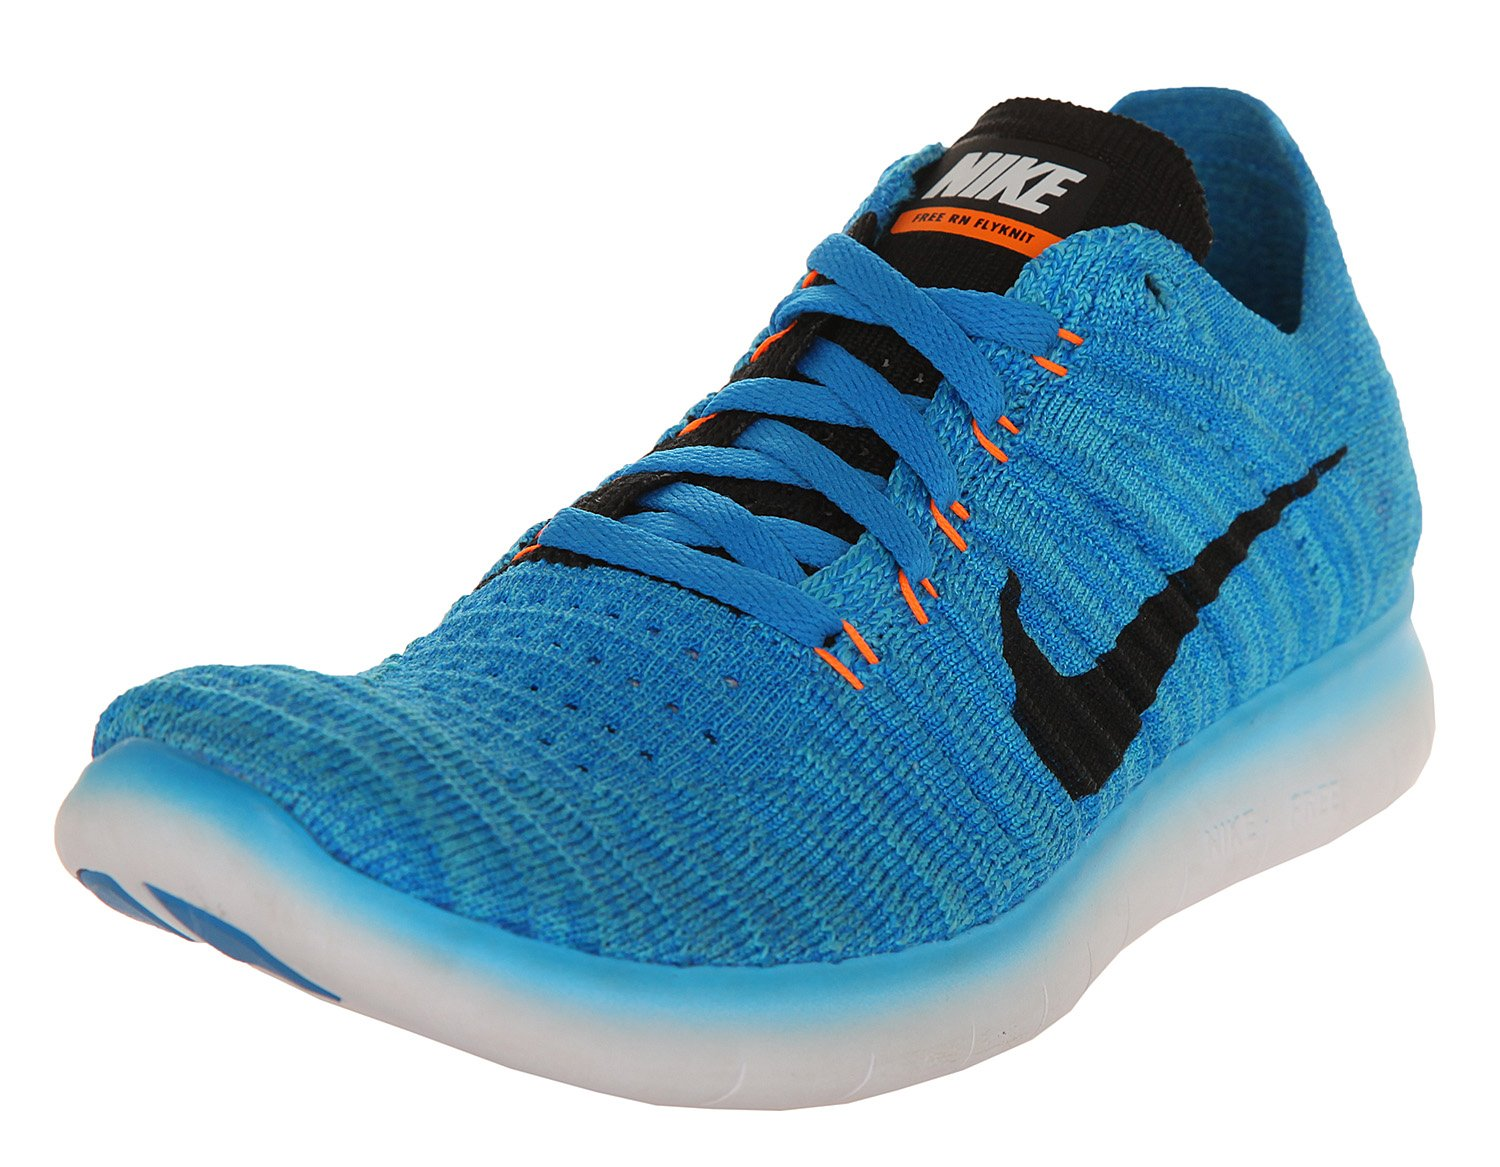 info for 9f0c8 d7790 Nike Kids Free RN Flyknit GS, PHOTO BLUE/BLACK-GAMMA BLUE-TOTAL ORANGE,  Youth Size 5.5